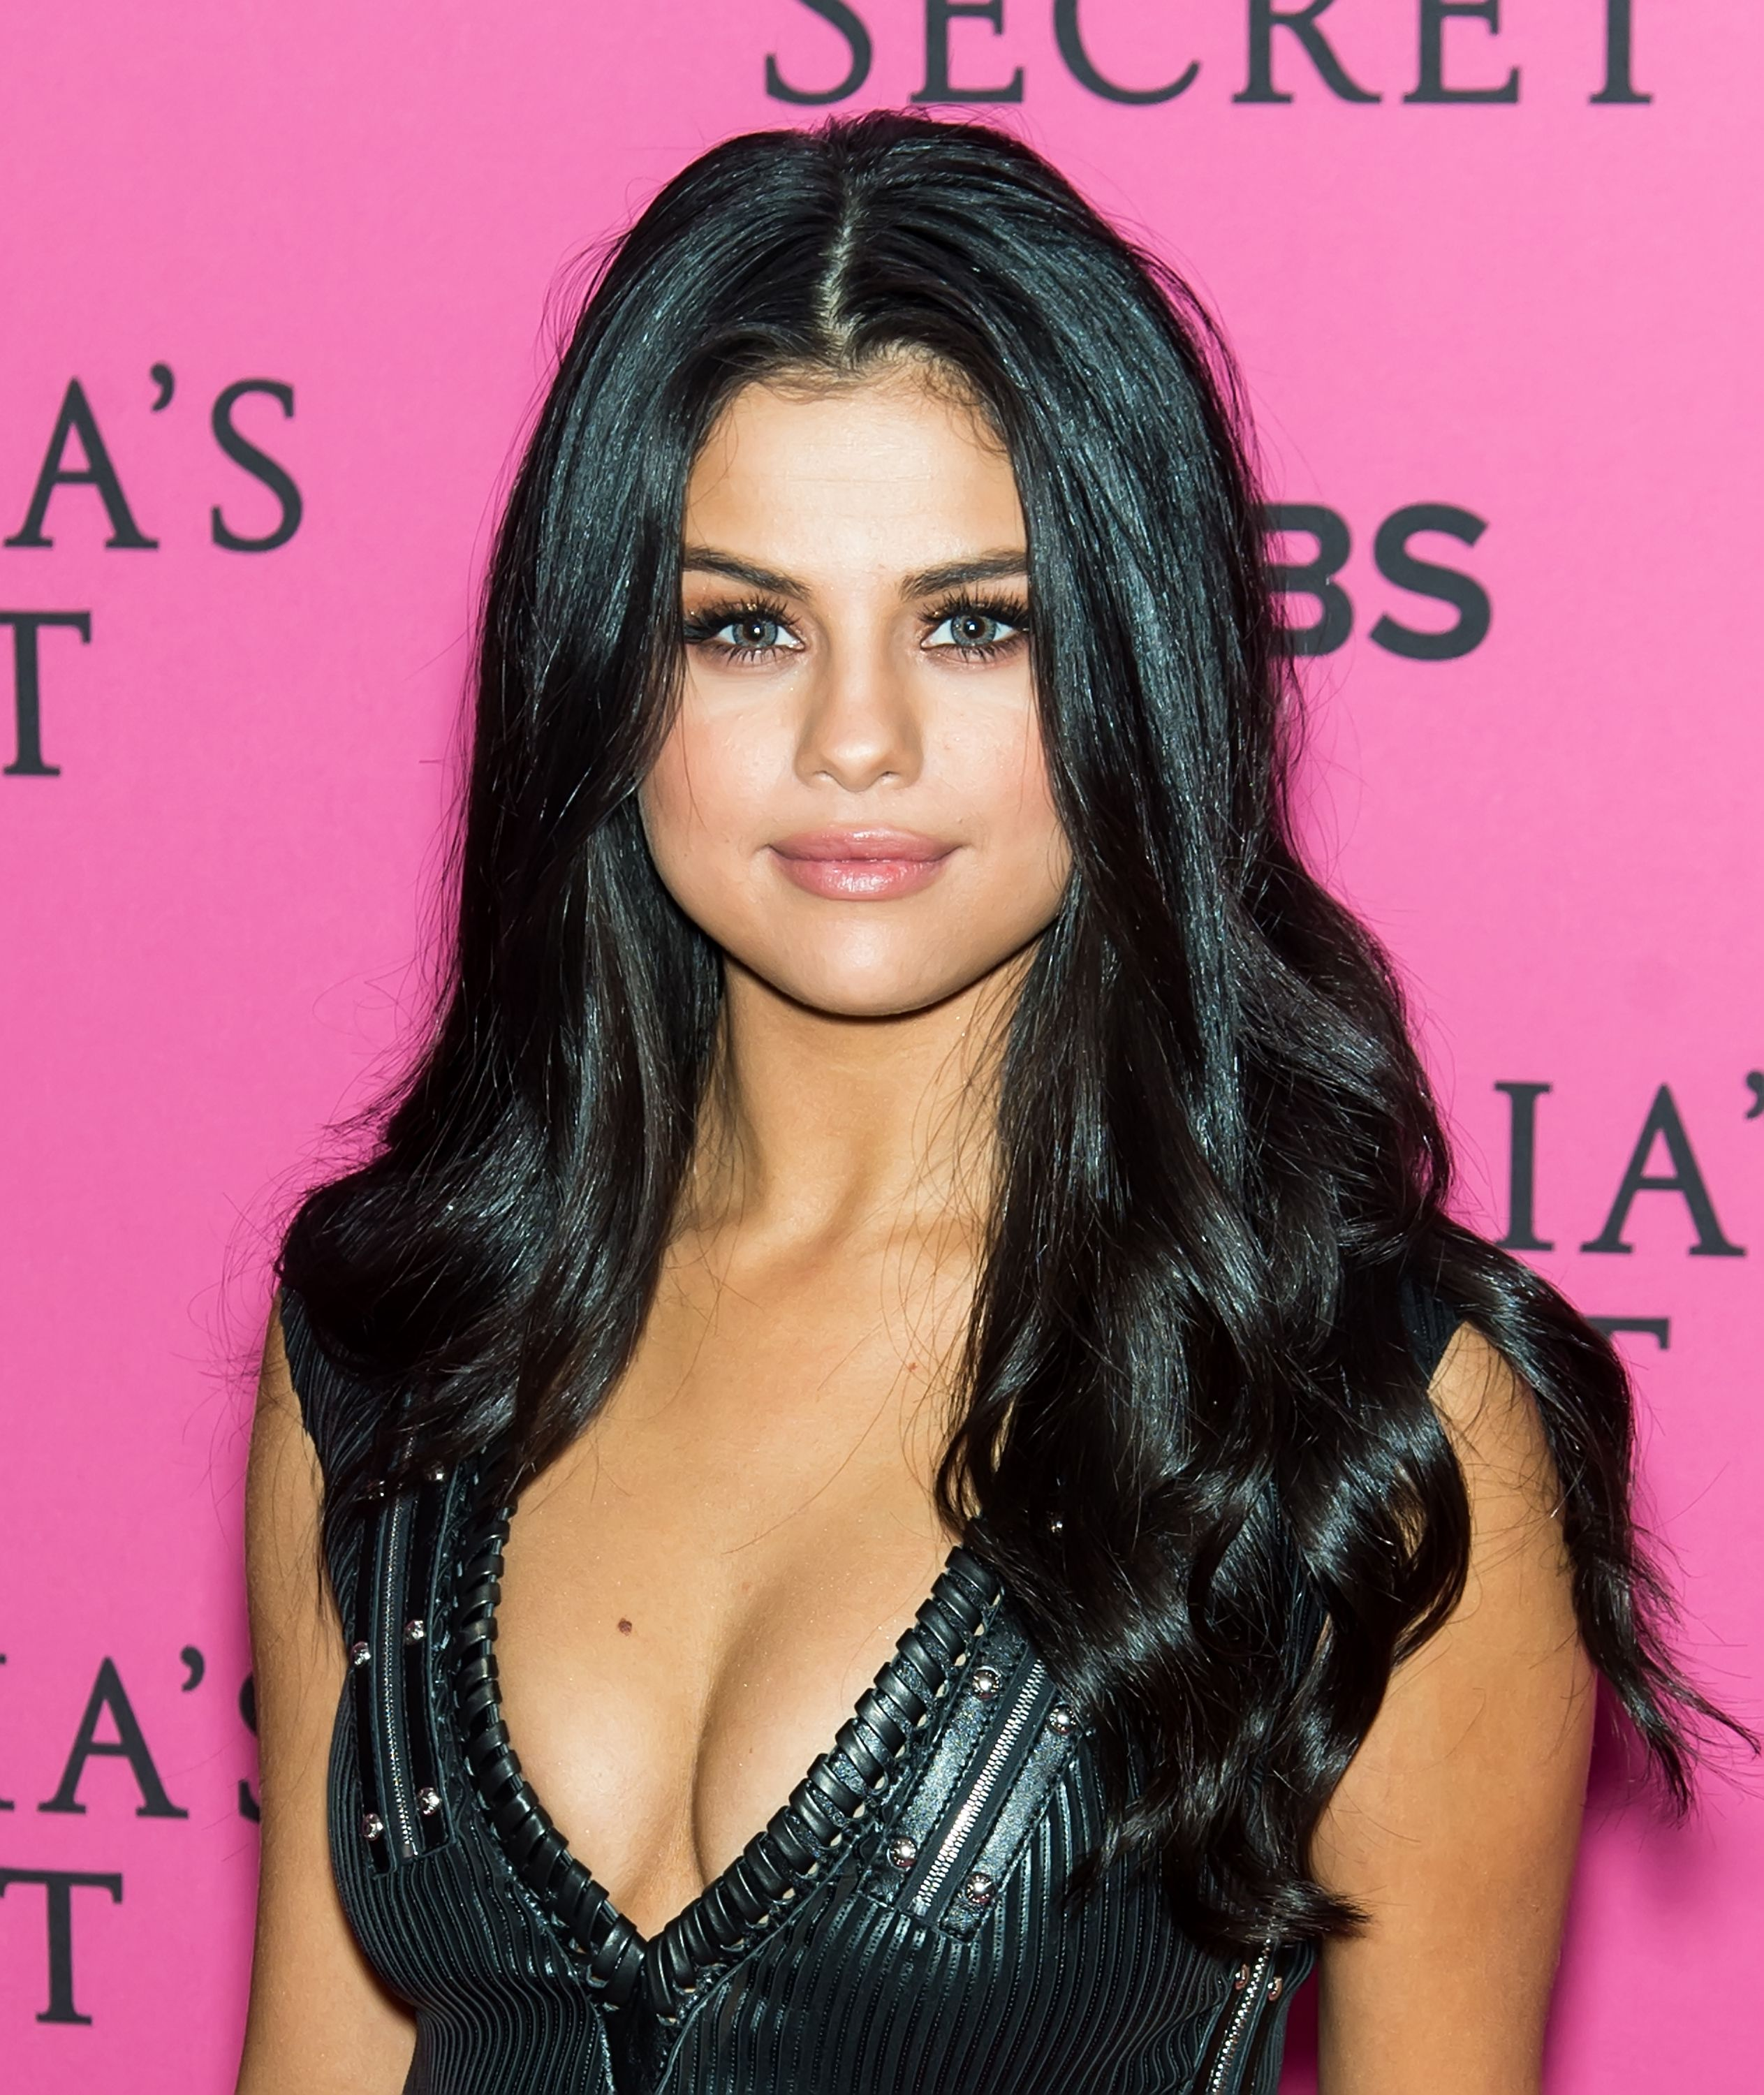 30+ Best Selena Gomez Hairstyles, From Short Hair and Shaved ...